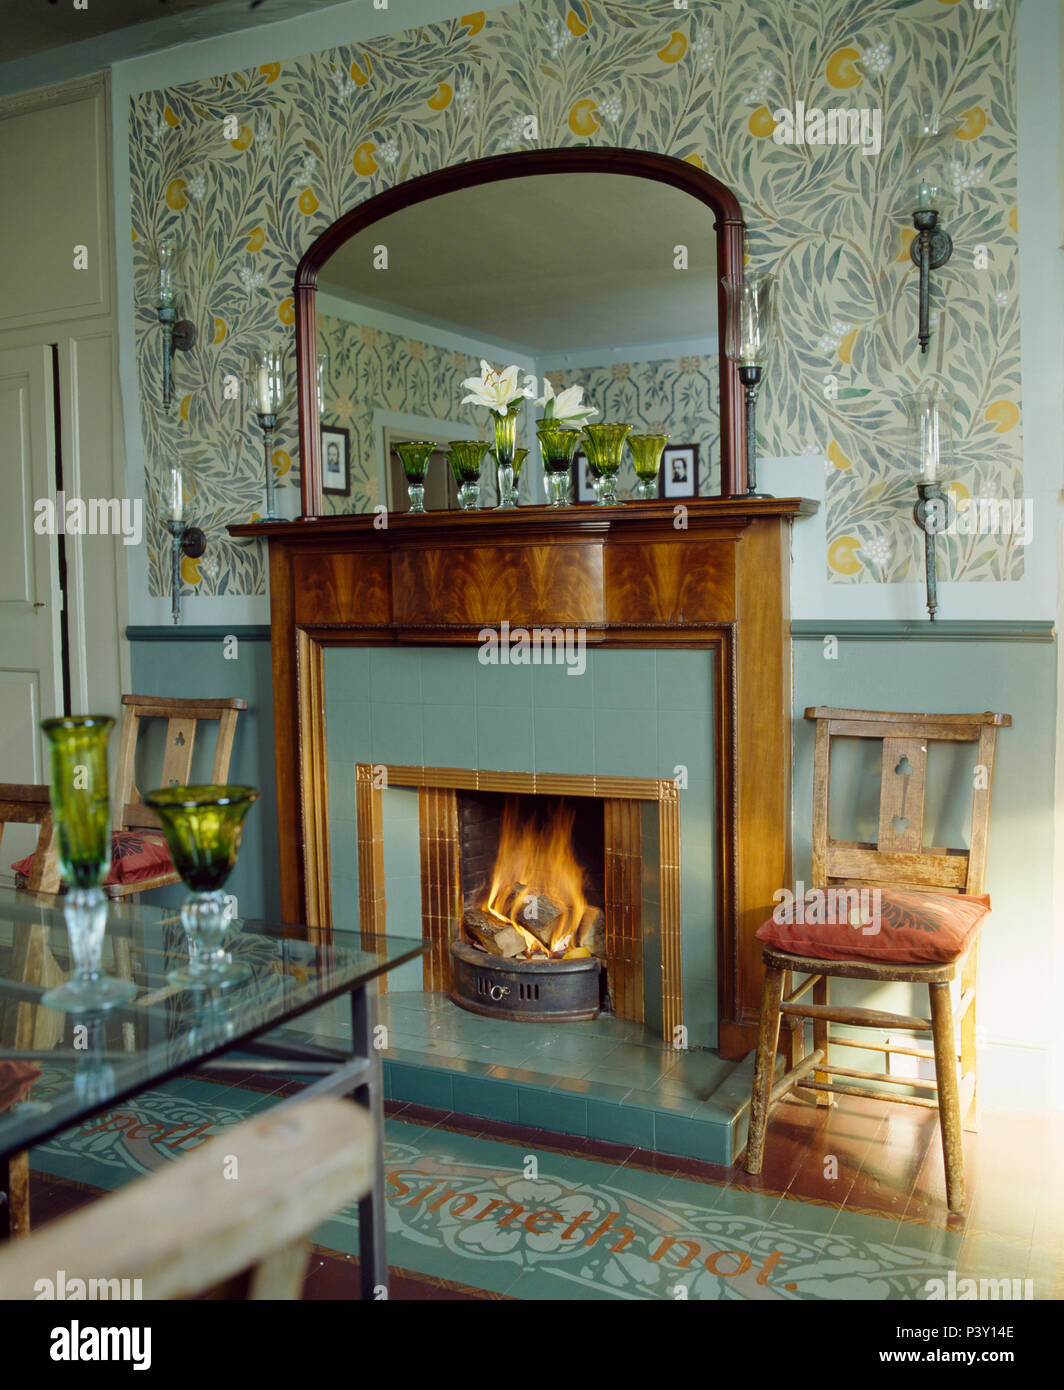 Stencilled Arts+Crafts pattern on wall above fireplace with lighted fire in country dining room - Stock Image